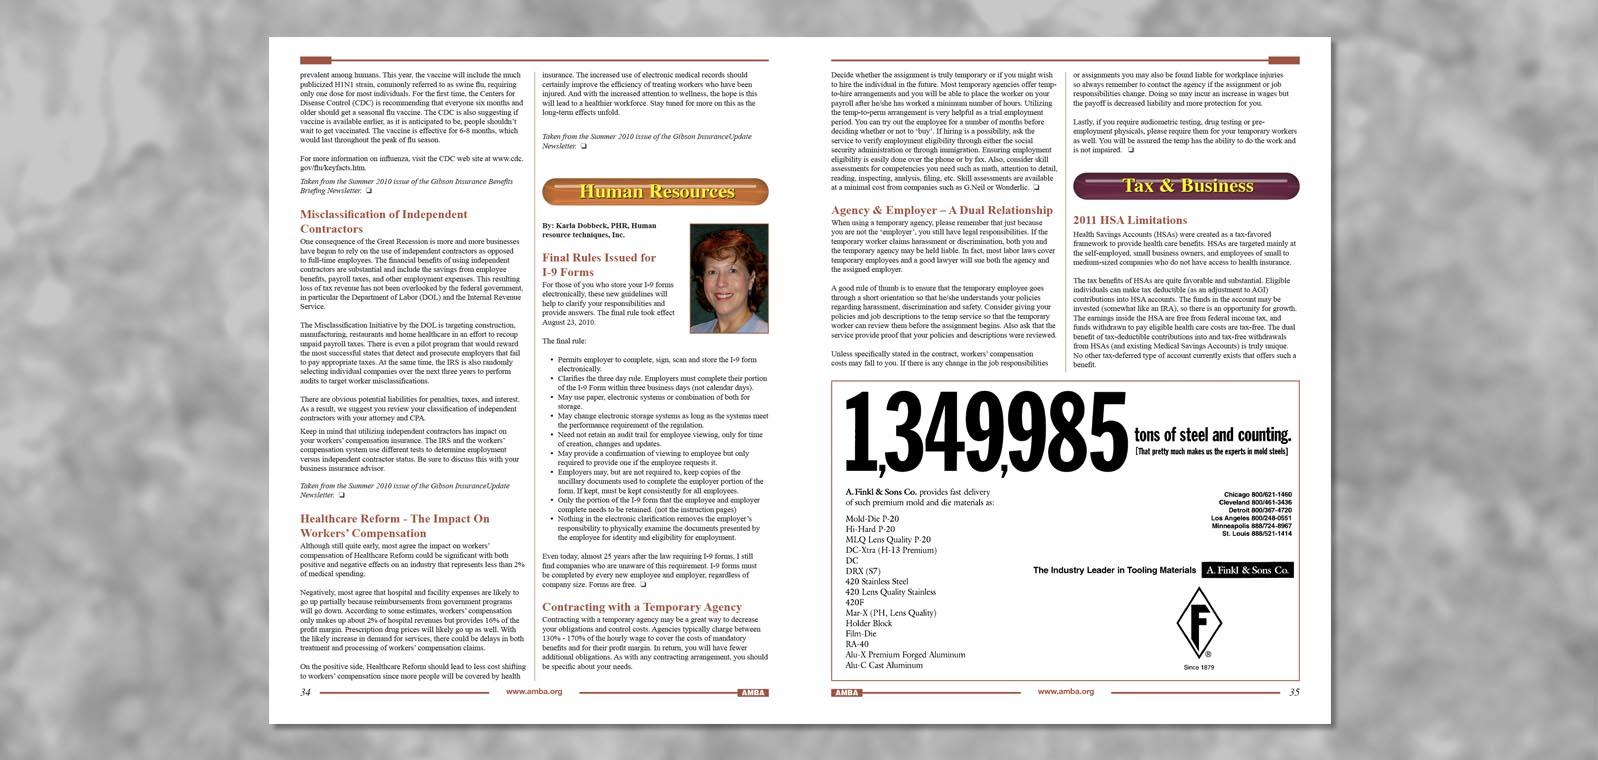 Newsletter Design Fall 2010The American Mold Builder Association